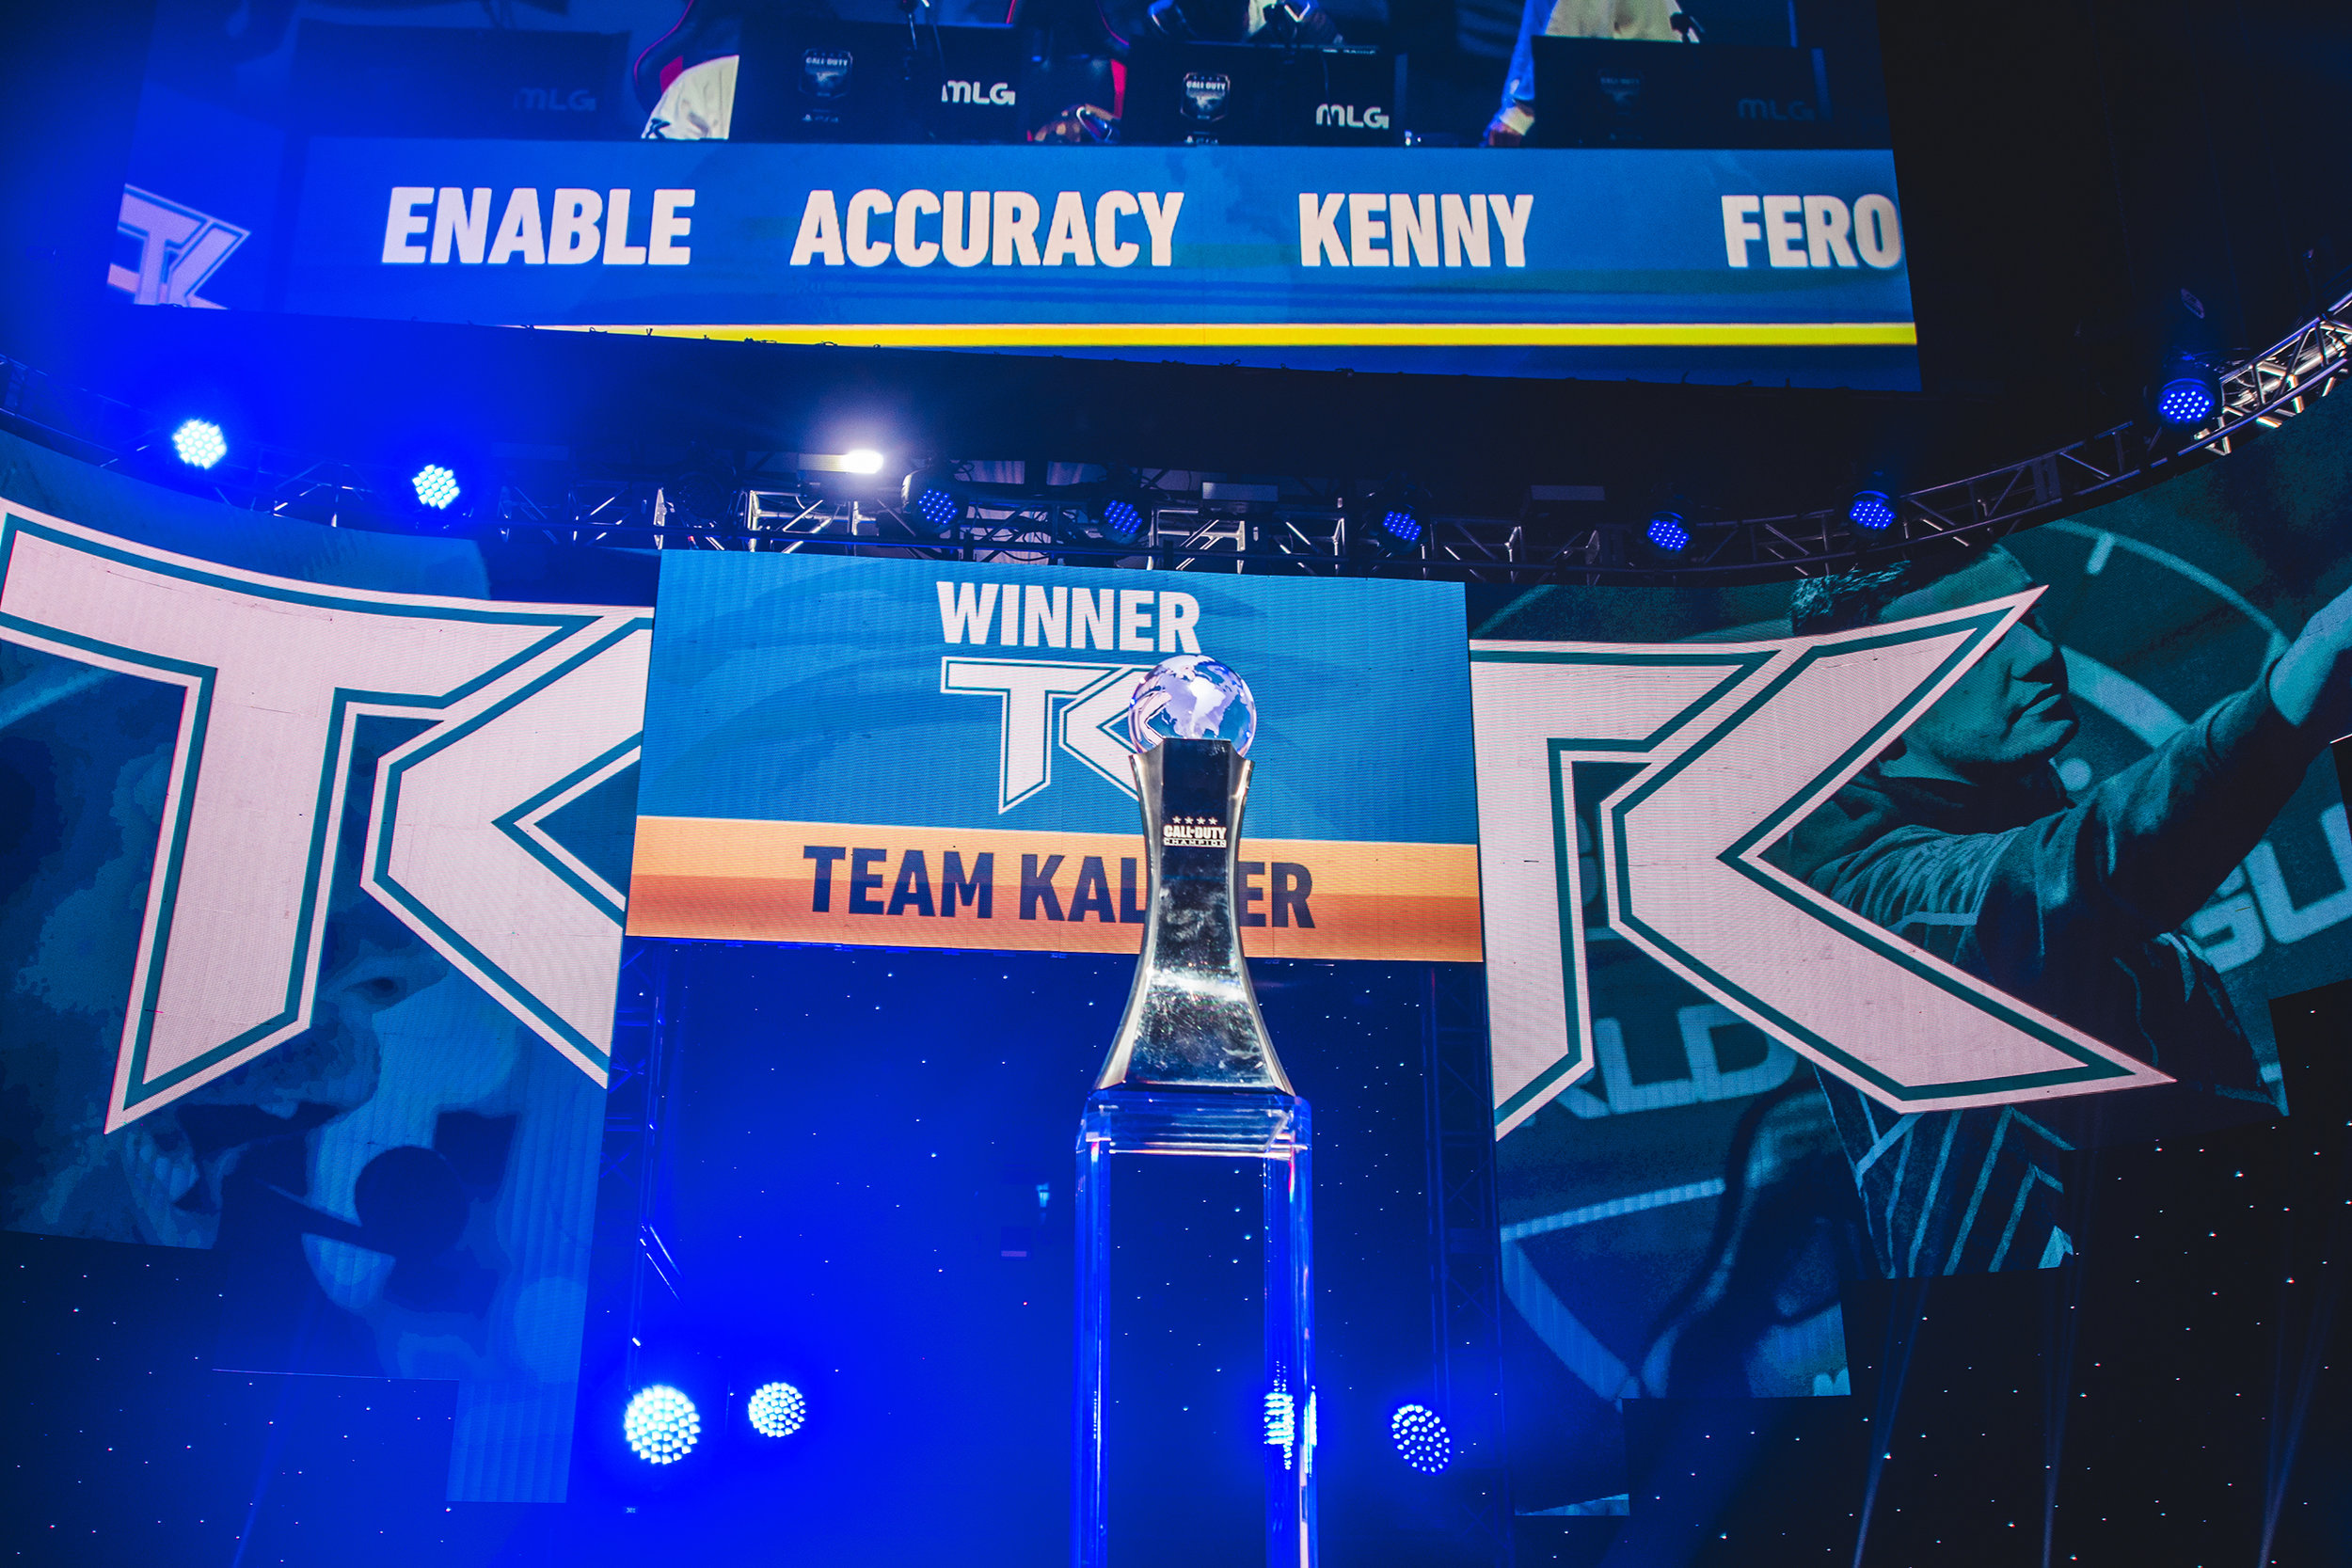 Team Kaliber winning decisive round, one step closer to the 2018 Call of Duty World League Championship trophy at Nationwide Arena on August 18, 2018 in Columbus, Ohio.  Photo by Eric Ananmalay / ESPAT Media